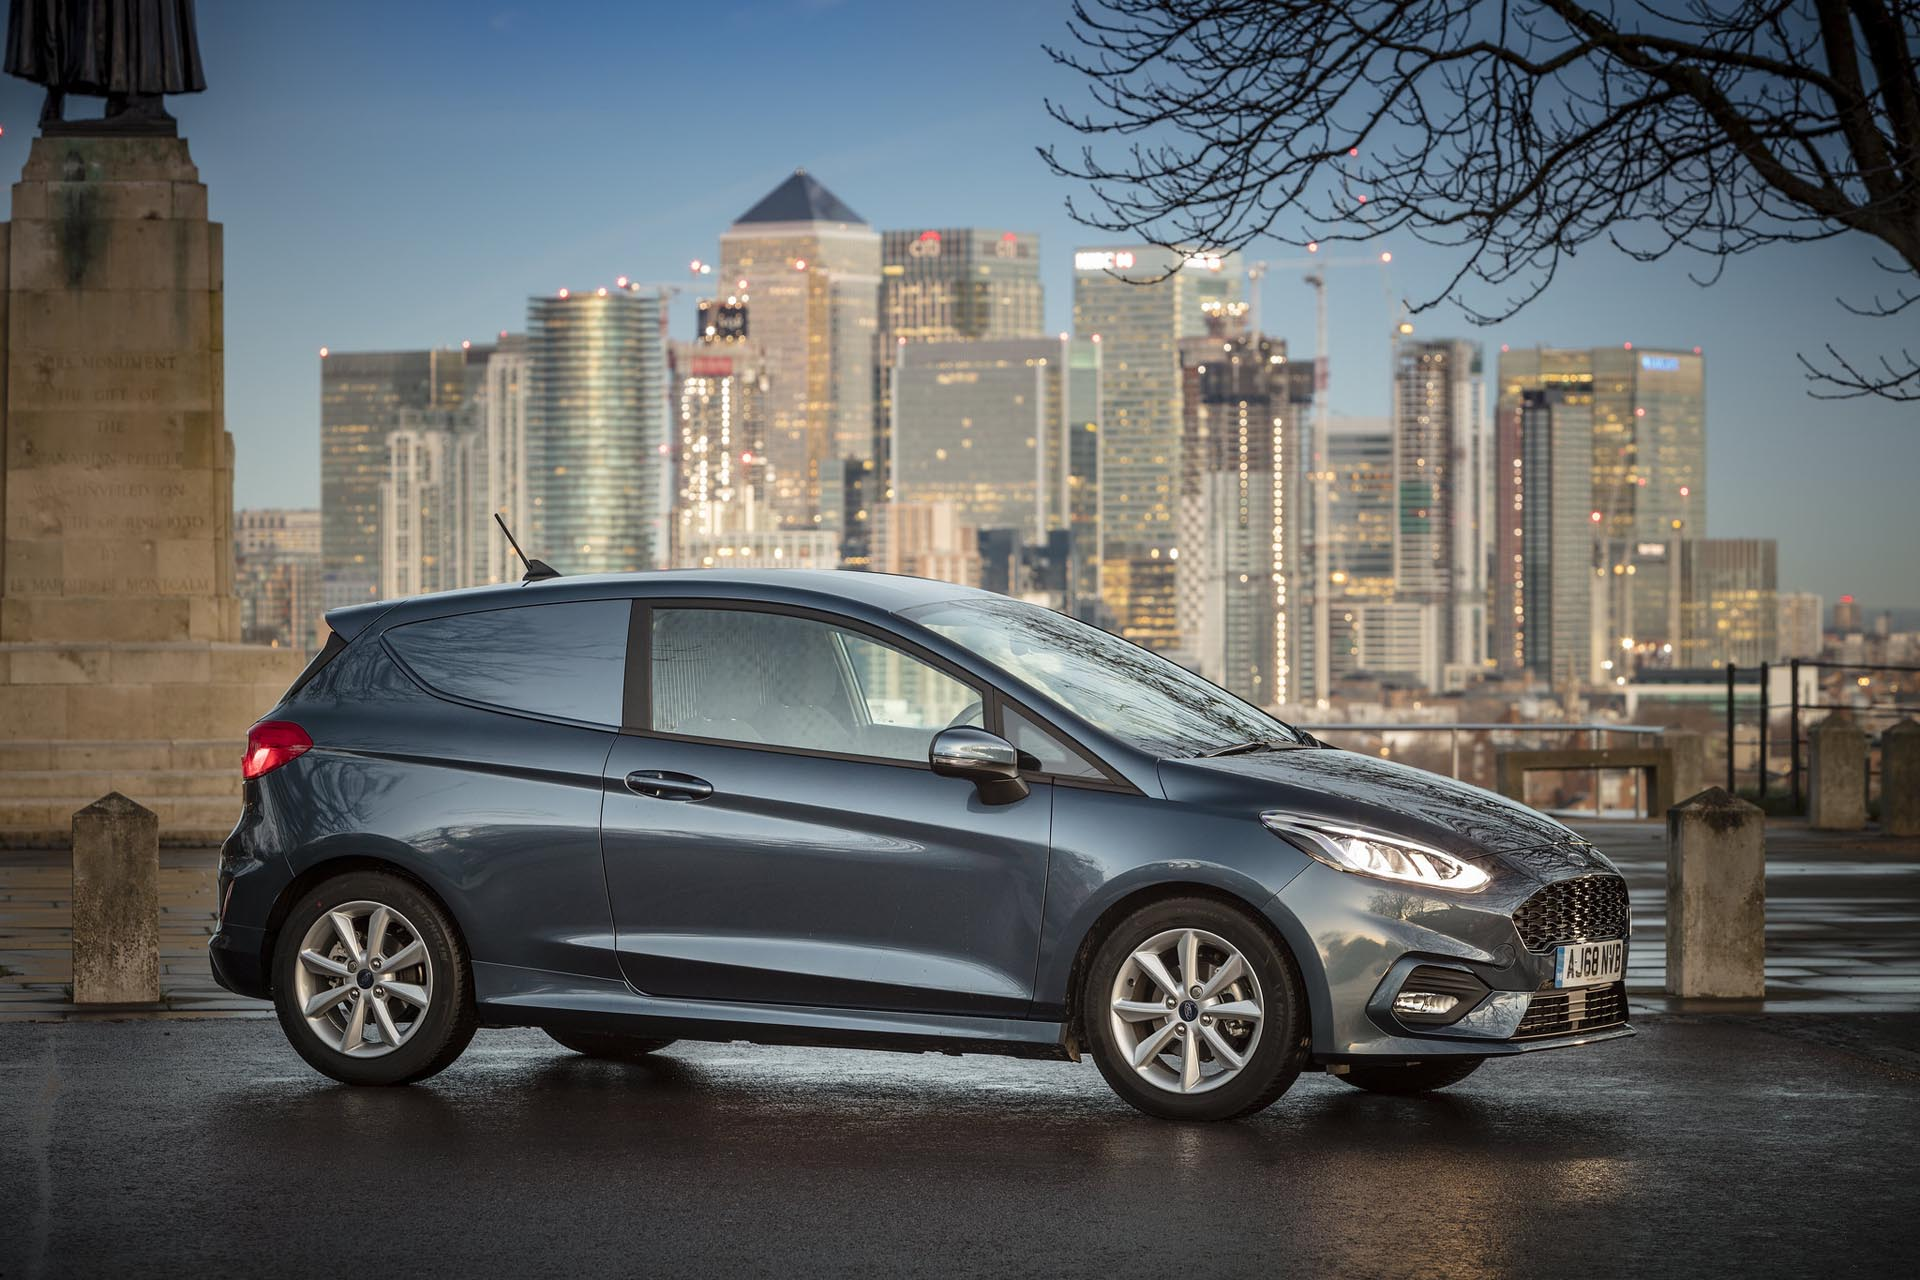 Ford Introduces Fuel Efficient Mild Hybrid Technology to Fiesta Van